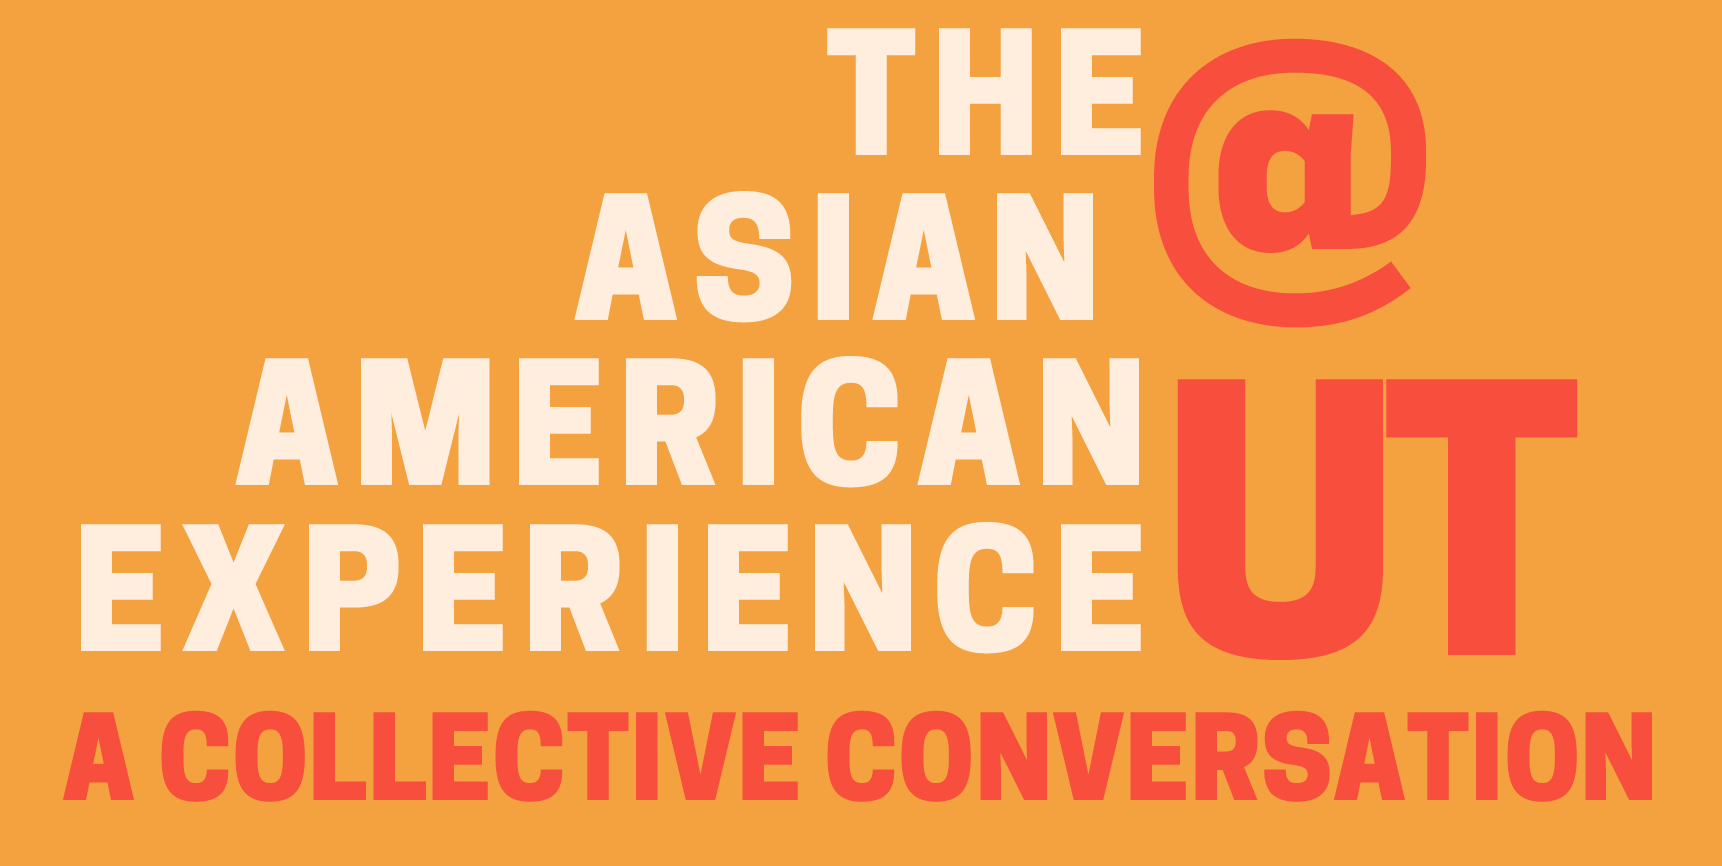 The Asian American Experience: A Collective Conversation